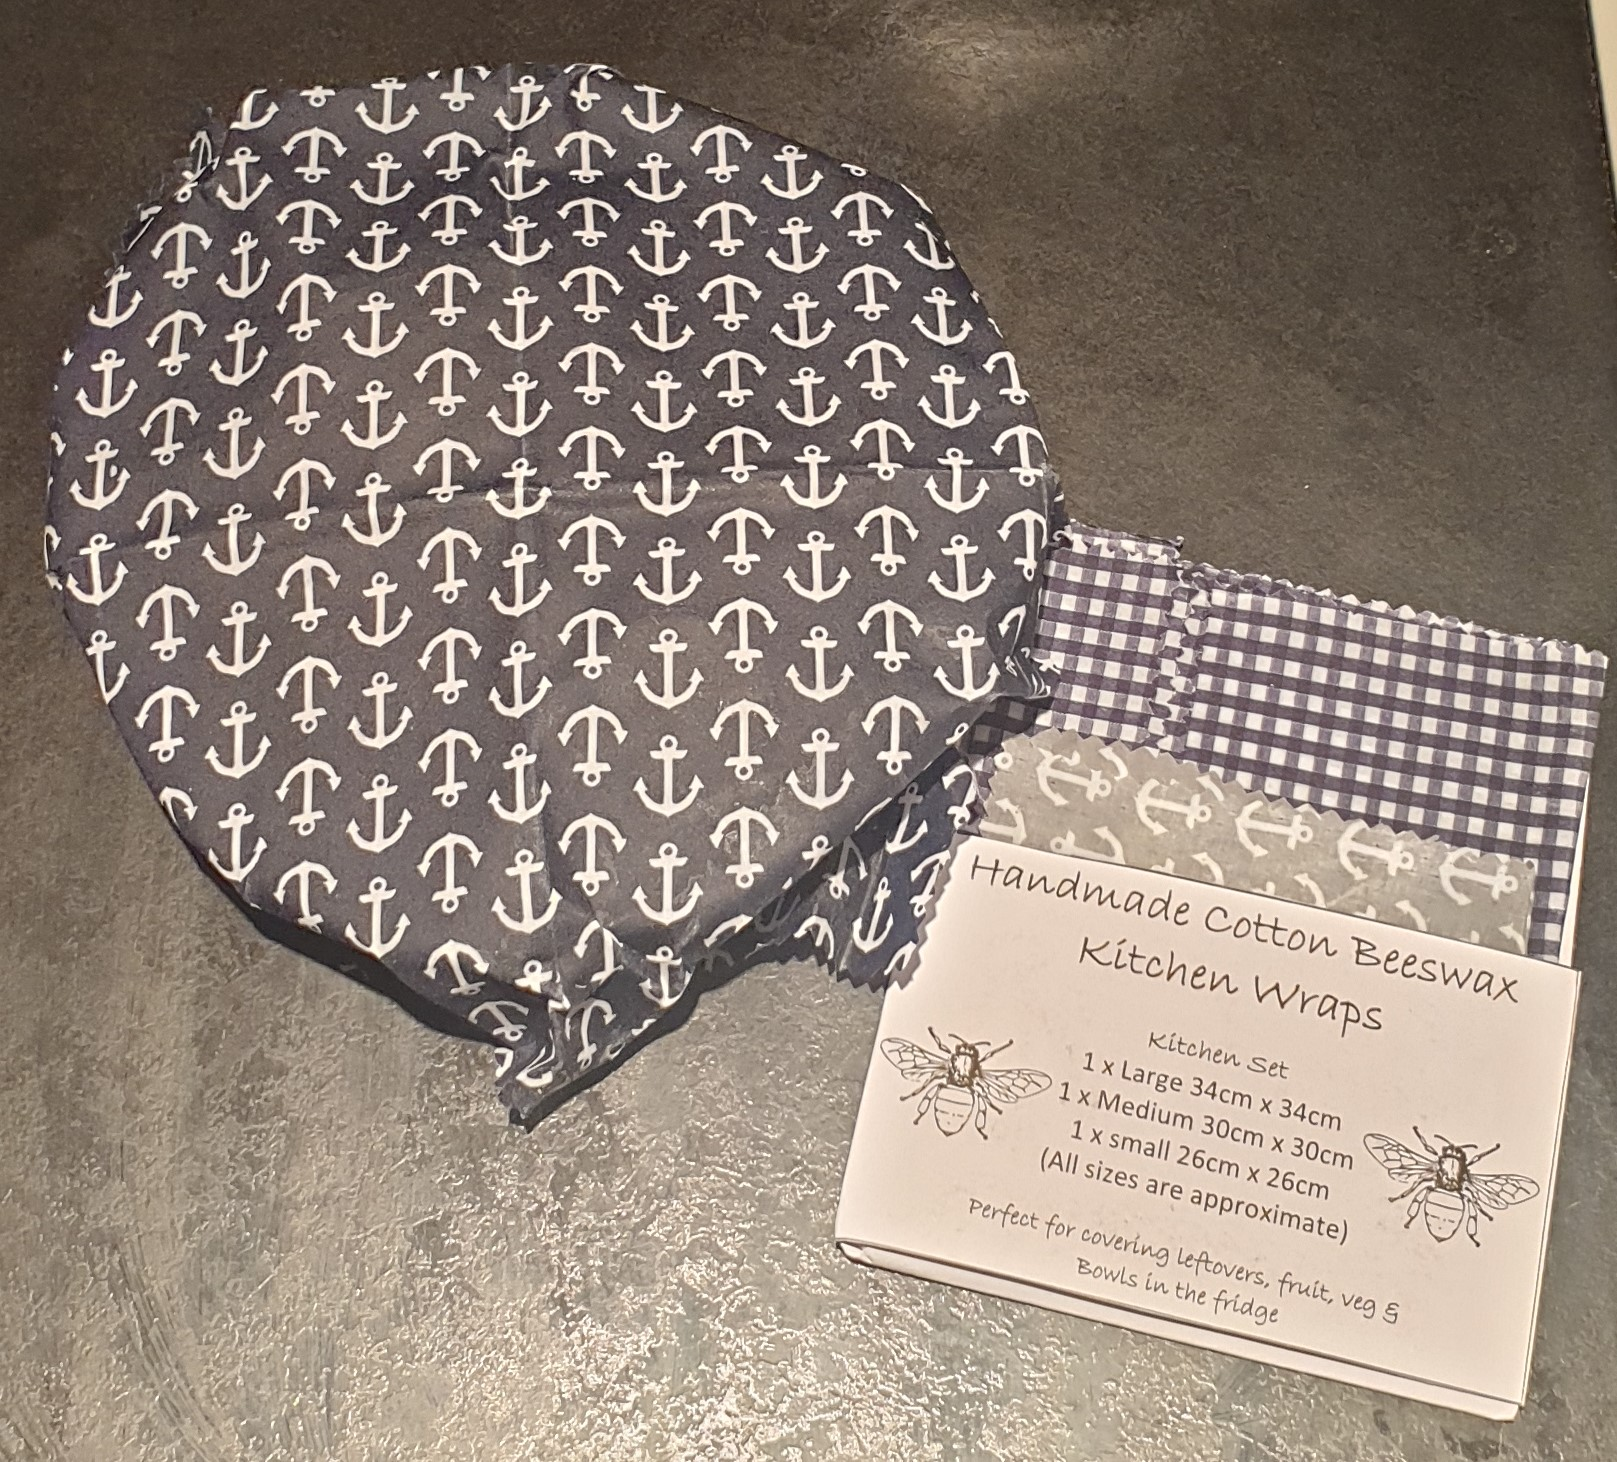 Picture of beeswax wraps